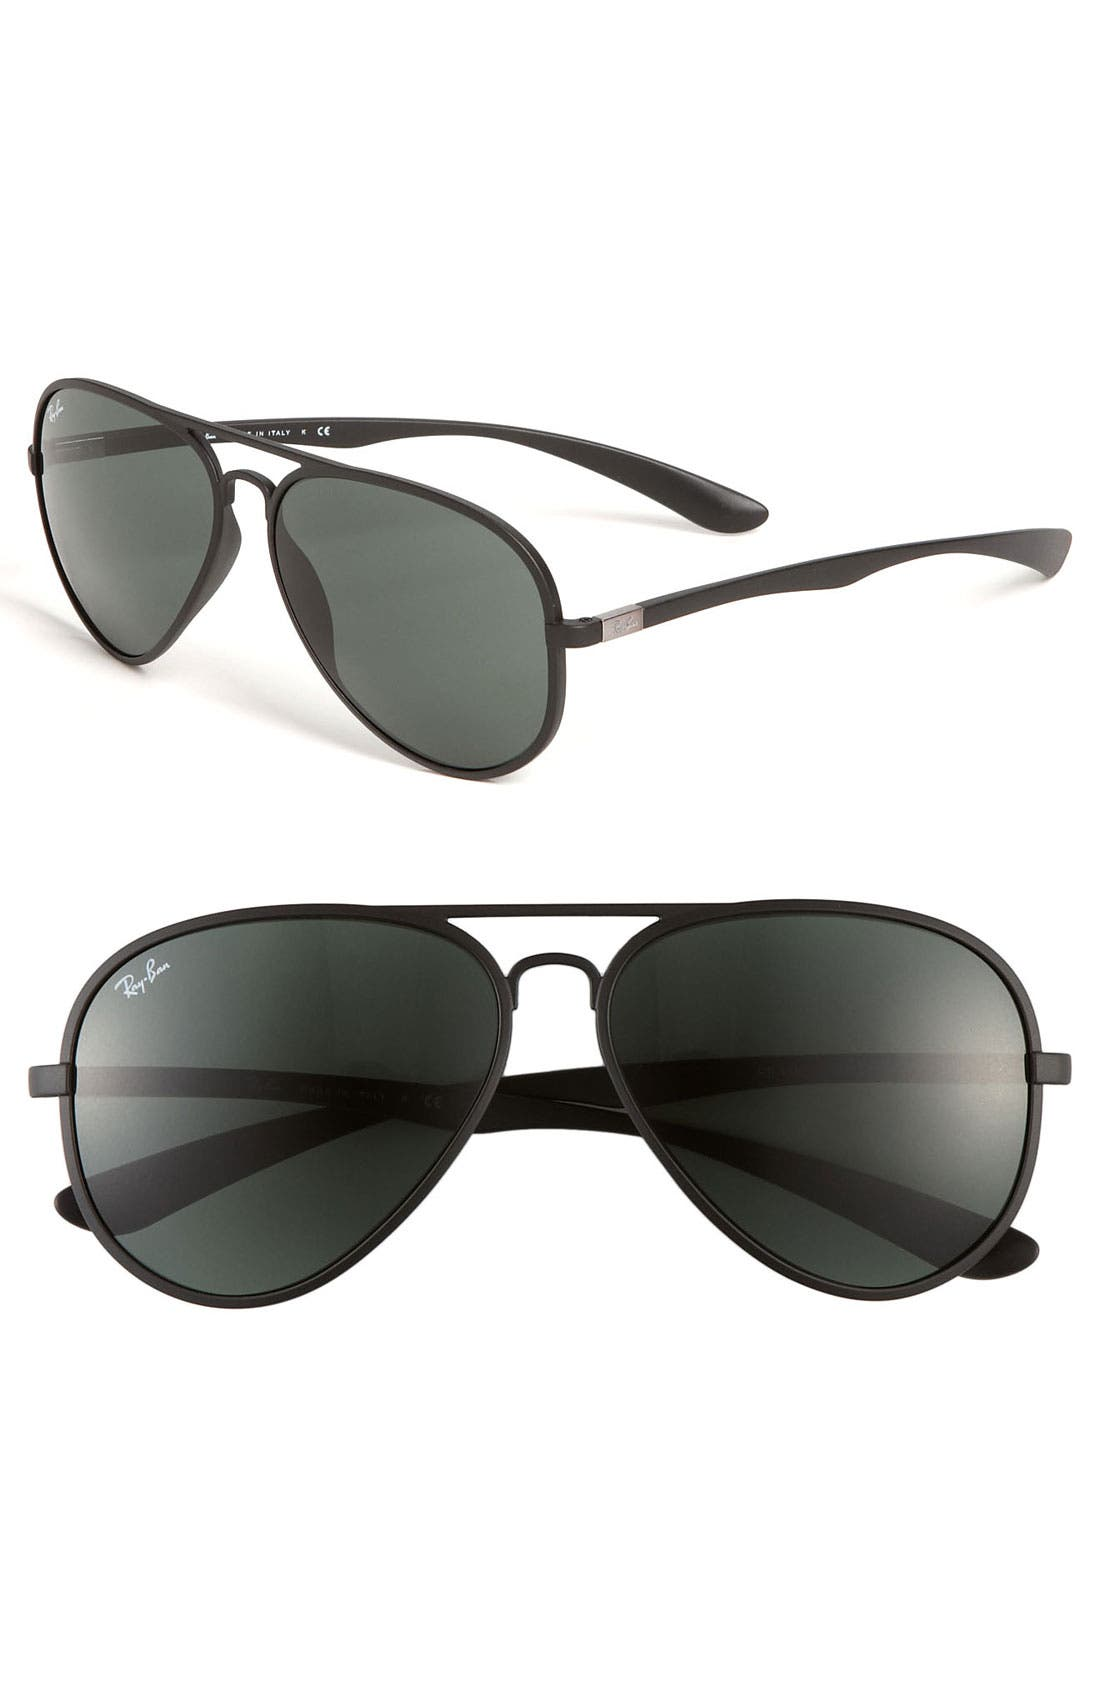 Main Image - Ray-Ban 'M Mod Caravan' 58mm Aviator Sunglasses